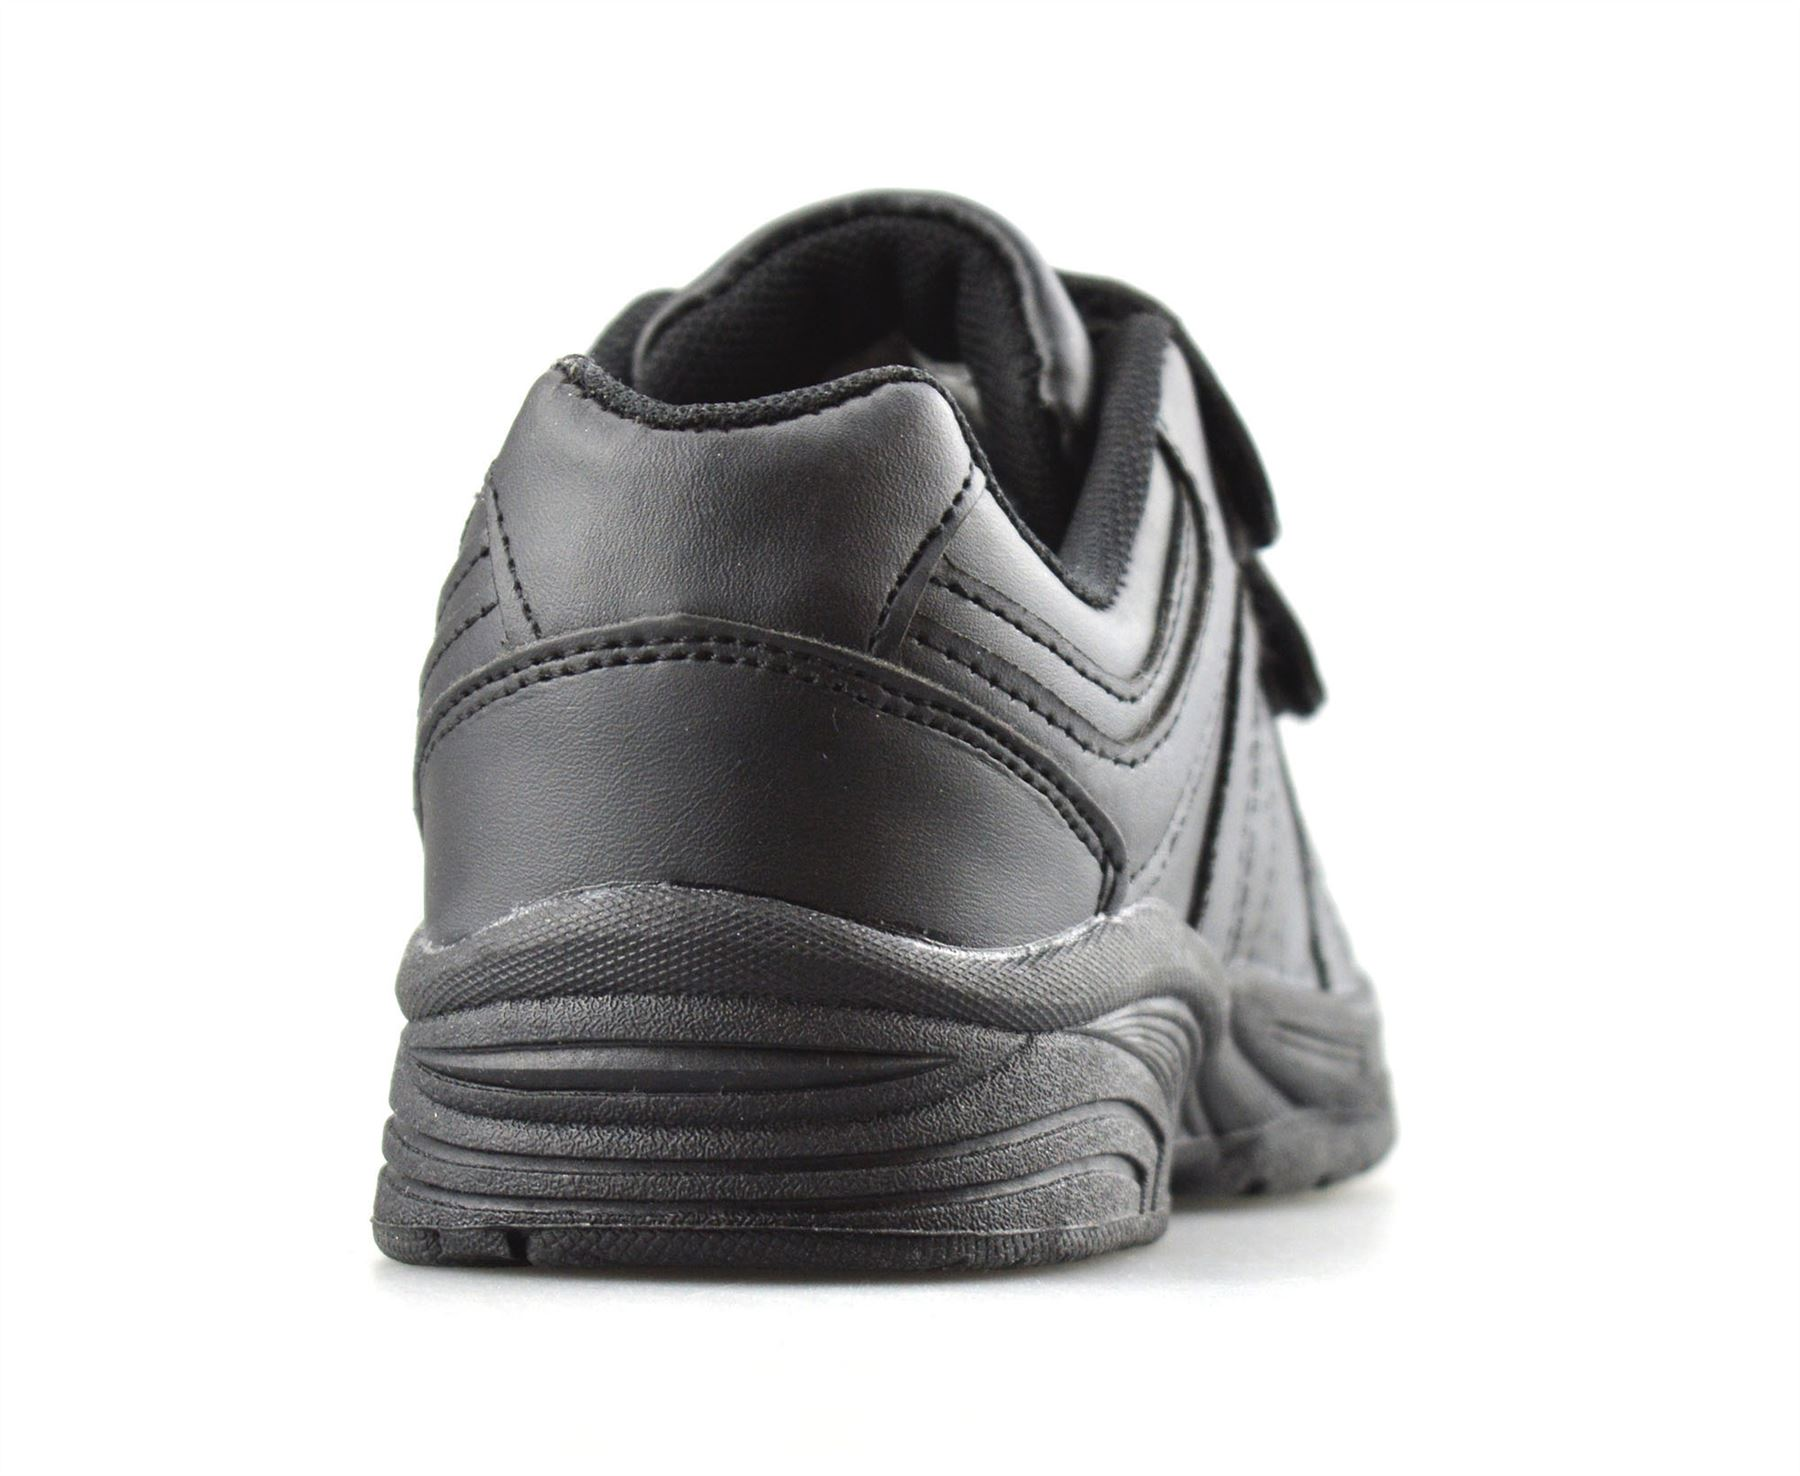 Boys-Kids-New-Formal-Smart-Casual-Touch-Strap-Back-To-School-Trainers-Shoes-Size thumbnail 10